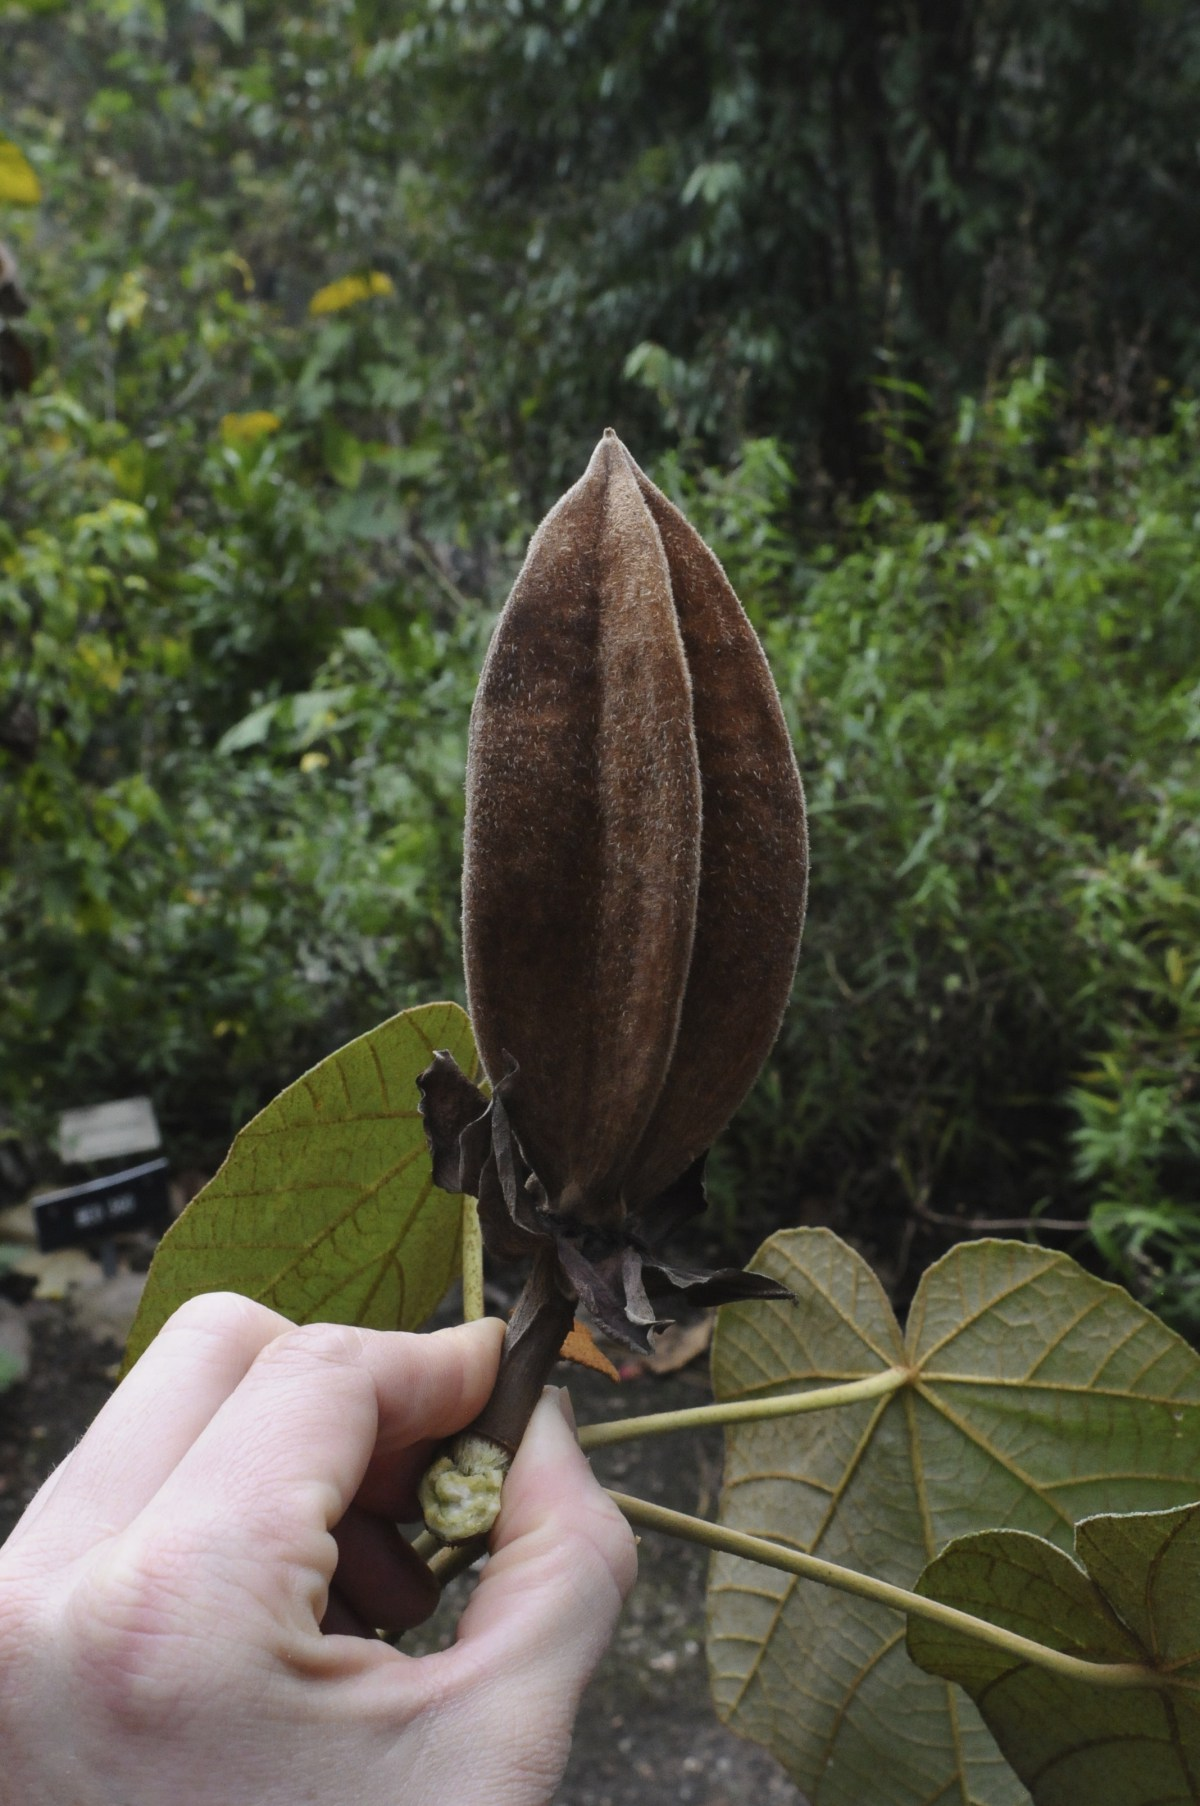 Chiranthodendron has a seedpod not dissimilar in form to the Starfruit. This pod is, however, extremely durable, making it challenging to extract seeds from an unopened pod.